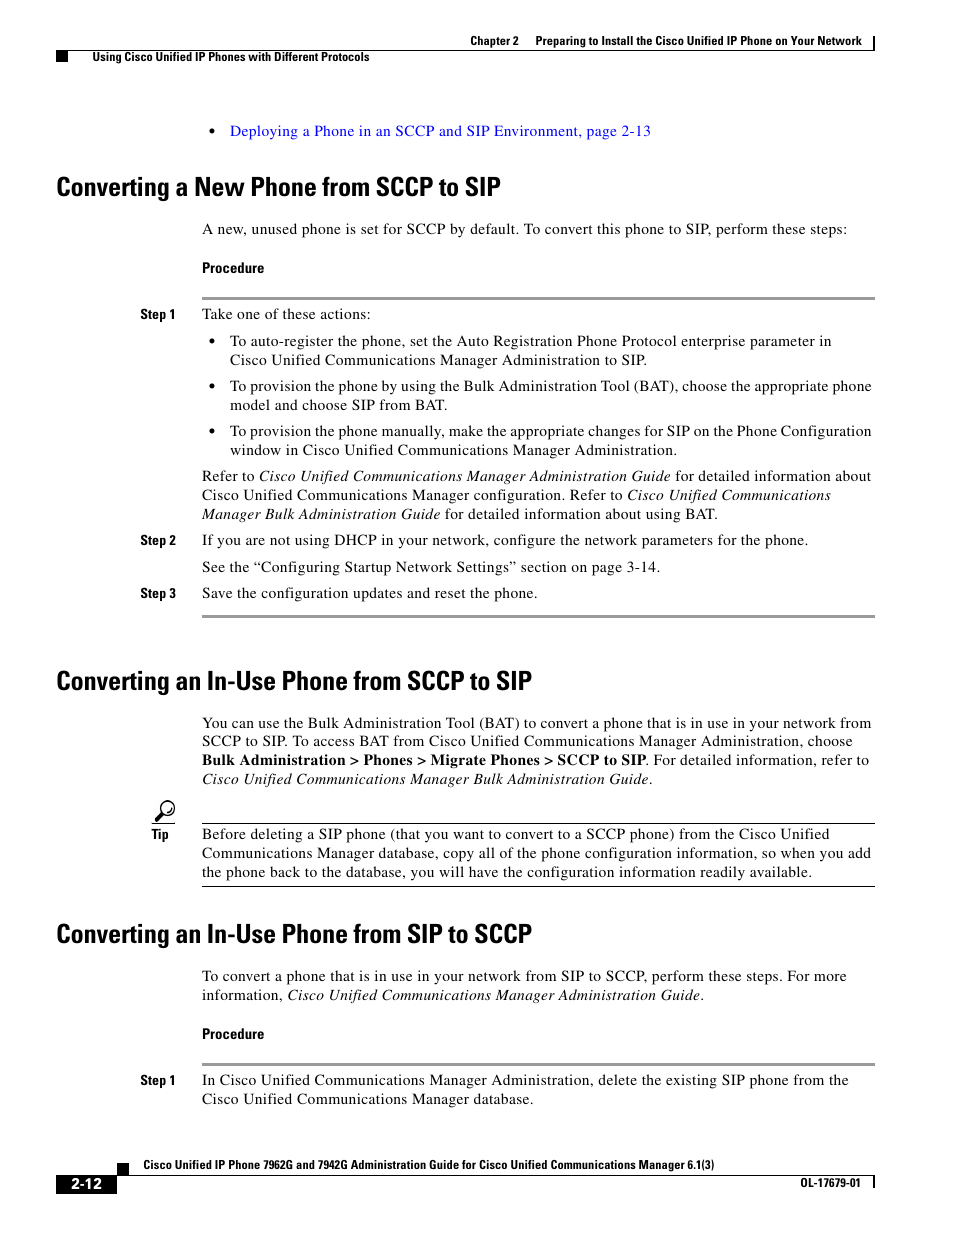 Converting a new phone from sccp to sip, Converting an in-use phone